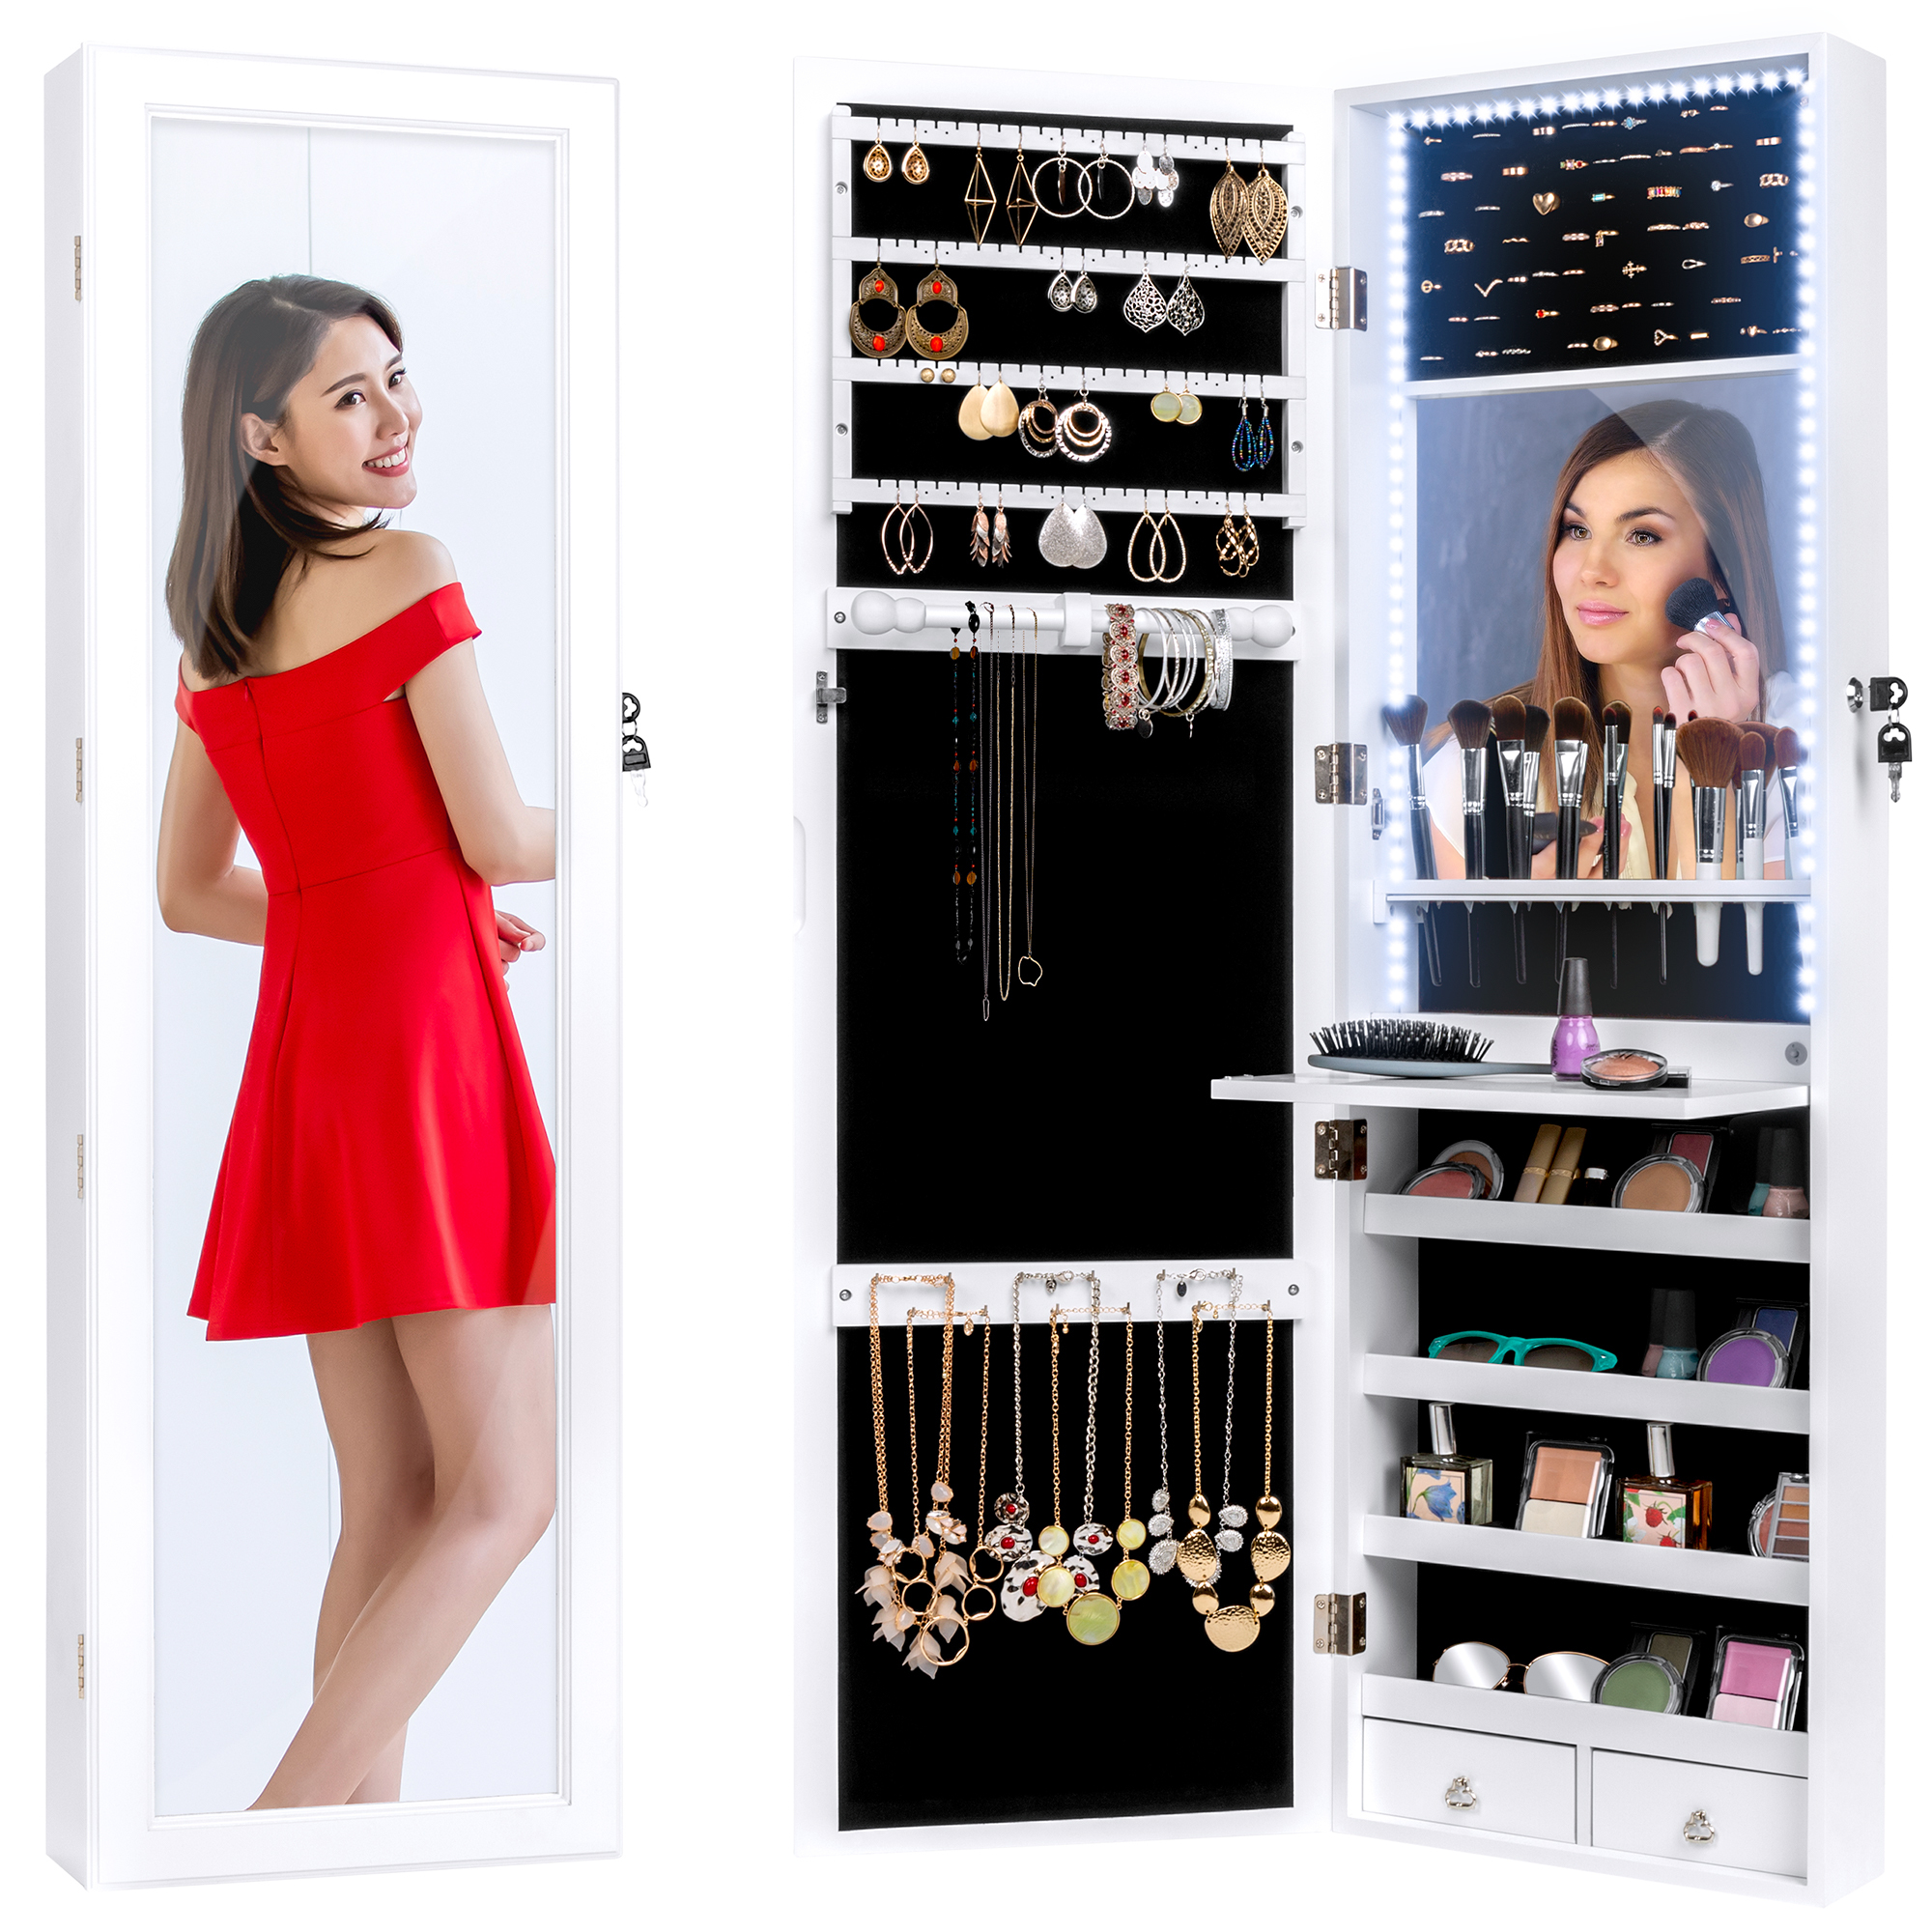 Best Choice Products Hanging Mirror Jewelry Armoire Cabinet For Door Or Wall Mount W Led Lights Cosmetics Tray Lock Walmart Com Walmart Com